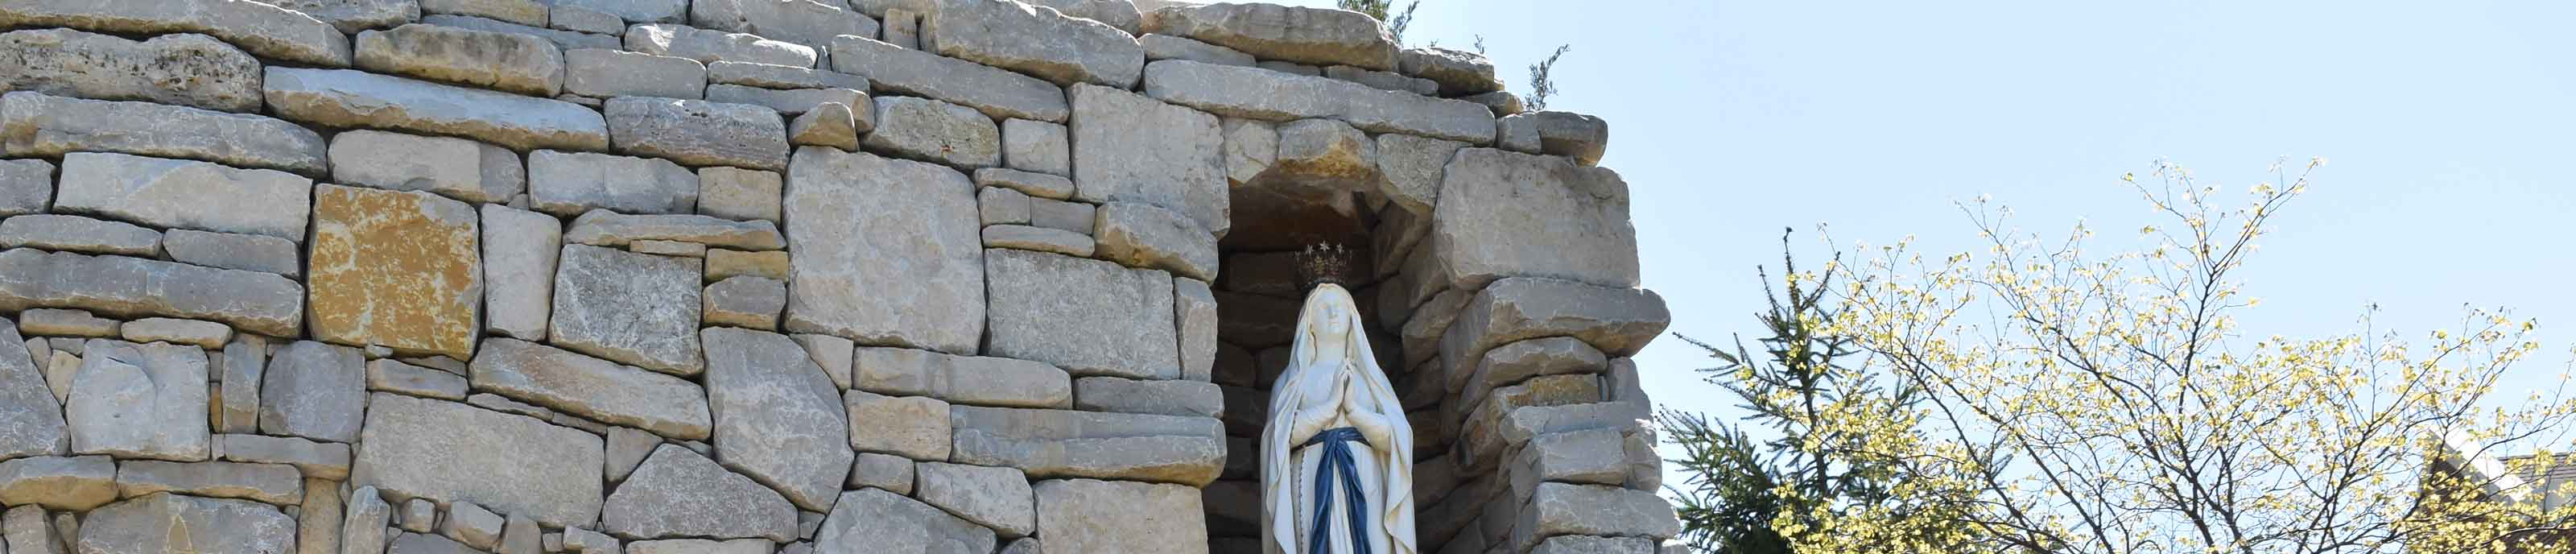 The statue of the Blessed Mother in Mary's Grotto